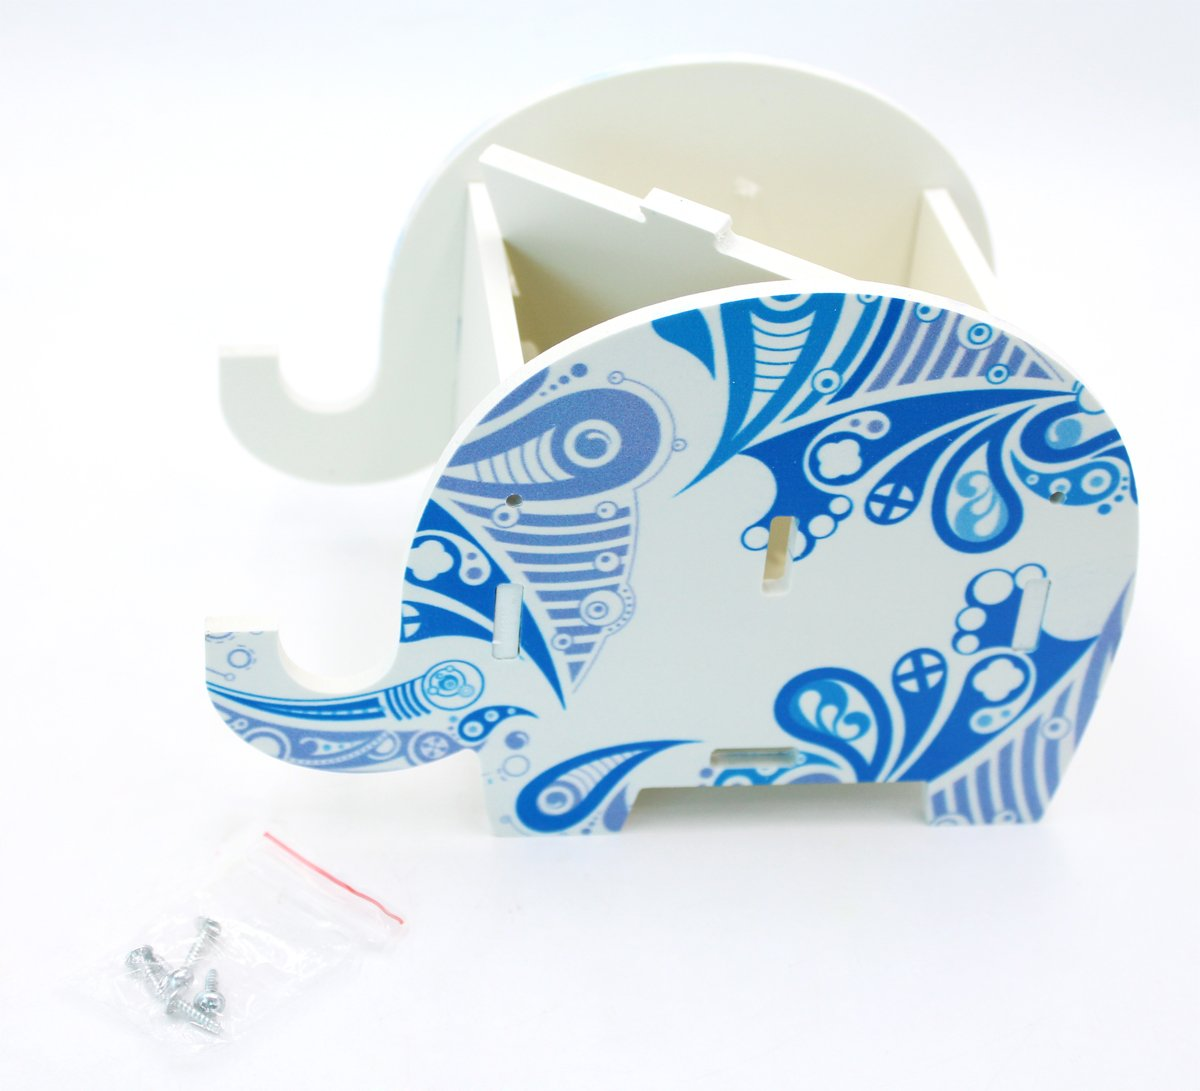 Cute Elephant Pen Pencil Comestic Stationery Holder Cell Phone Stand Multifunctional Storage Box Business Card by KINGSEVEN (Image #4)